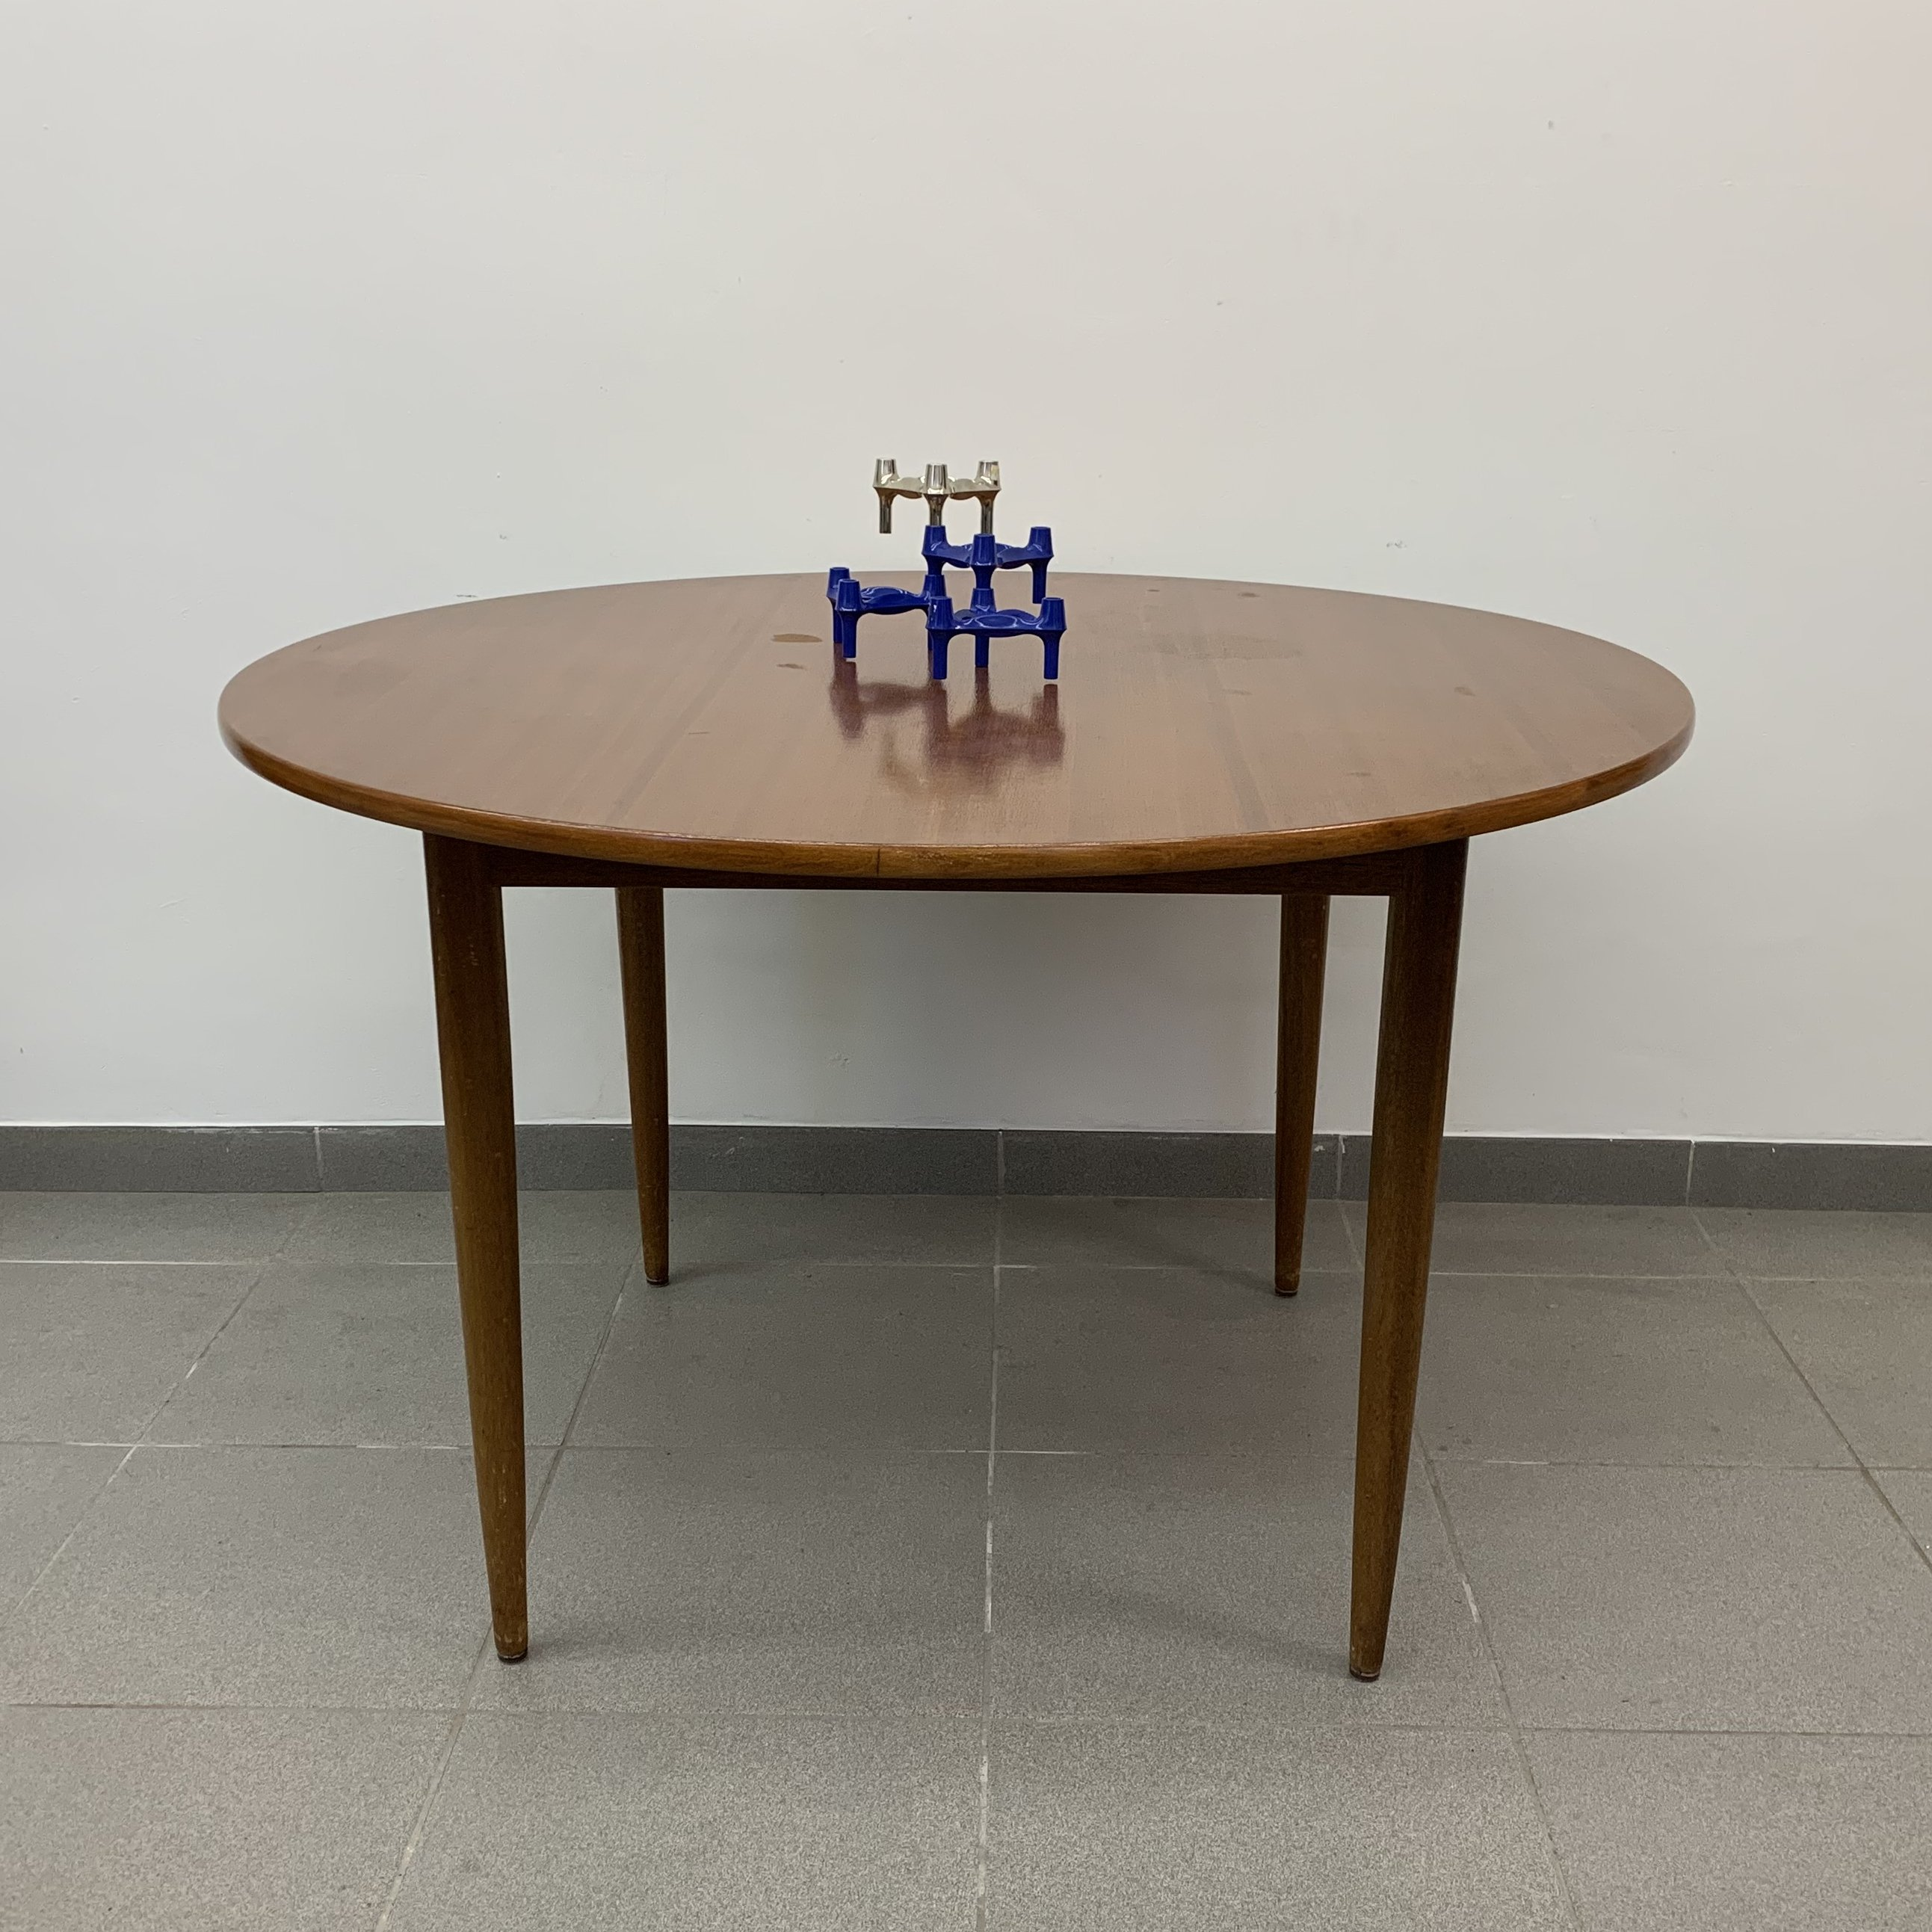 Vintage Formule Meubelen Round Dining Table 1960 S 91677